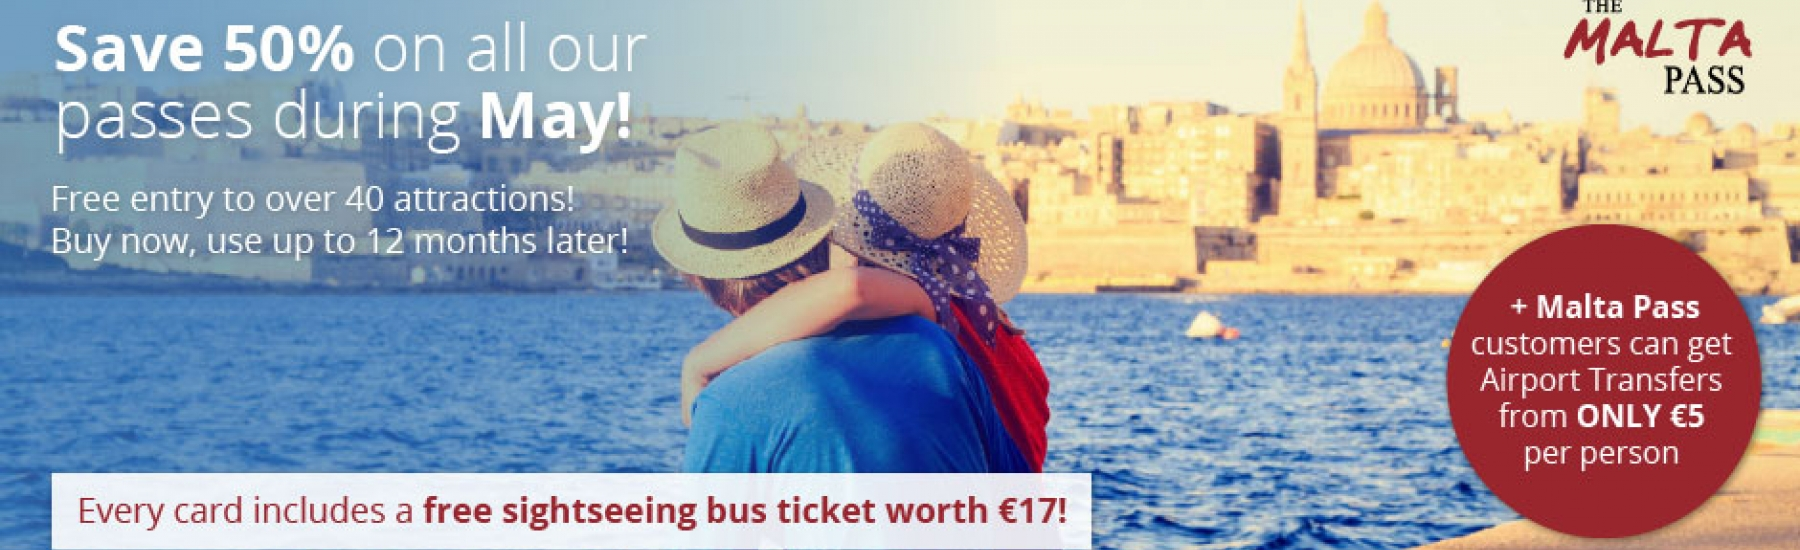 All Prices On This Site Are Inclusive Of VAT Where Applicable. Contracts  Through The Site Can Only Be Concluded In English. Malta Pass Operates  Under A The ...